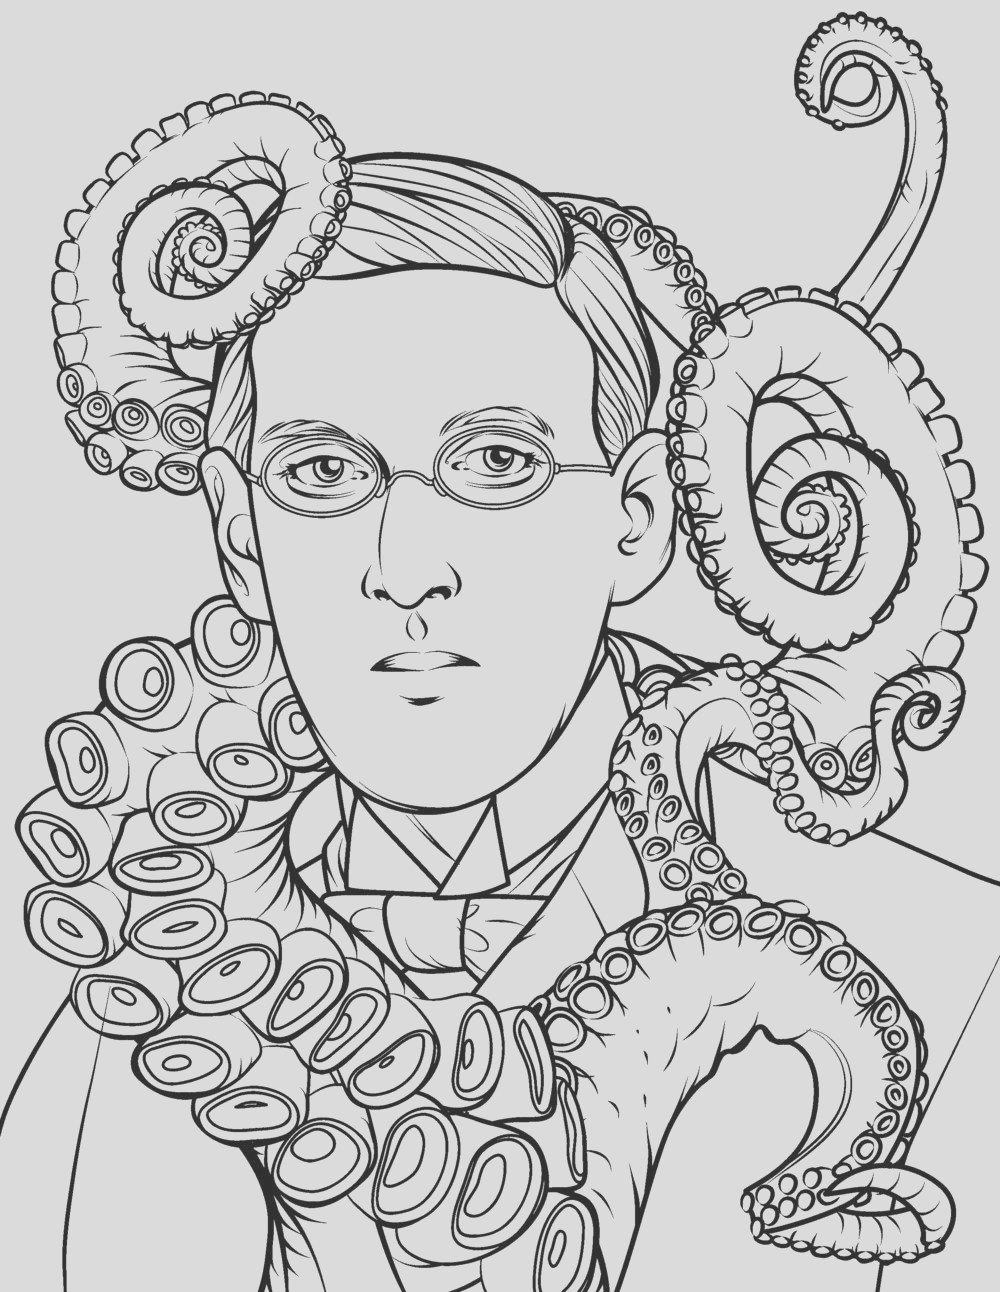 hp lovecraft coloring dot to dot